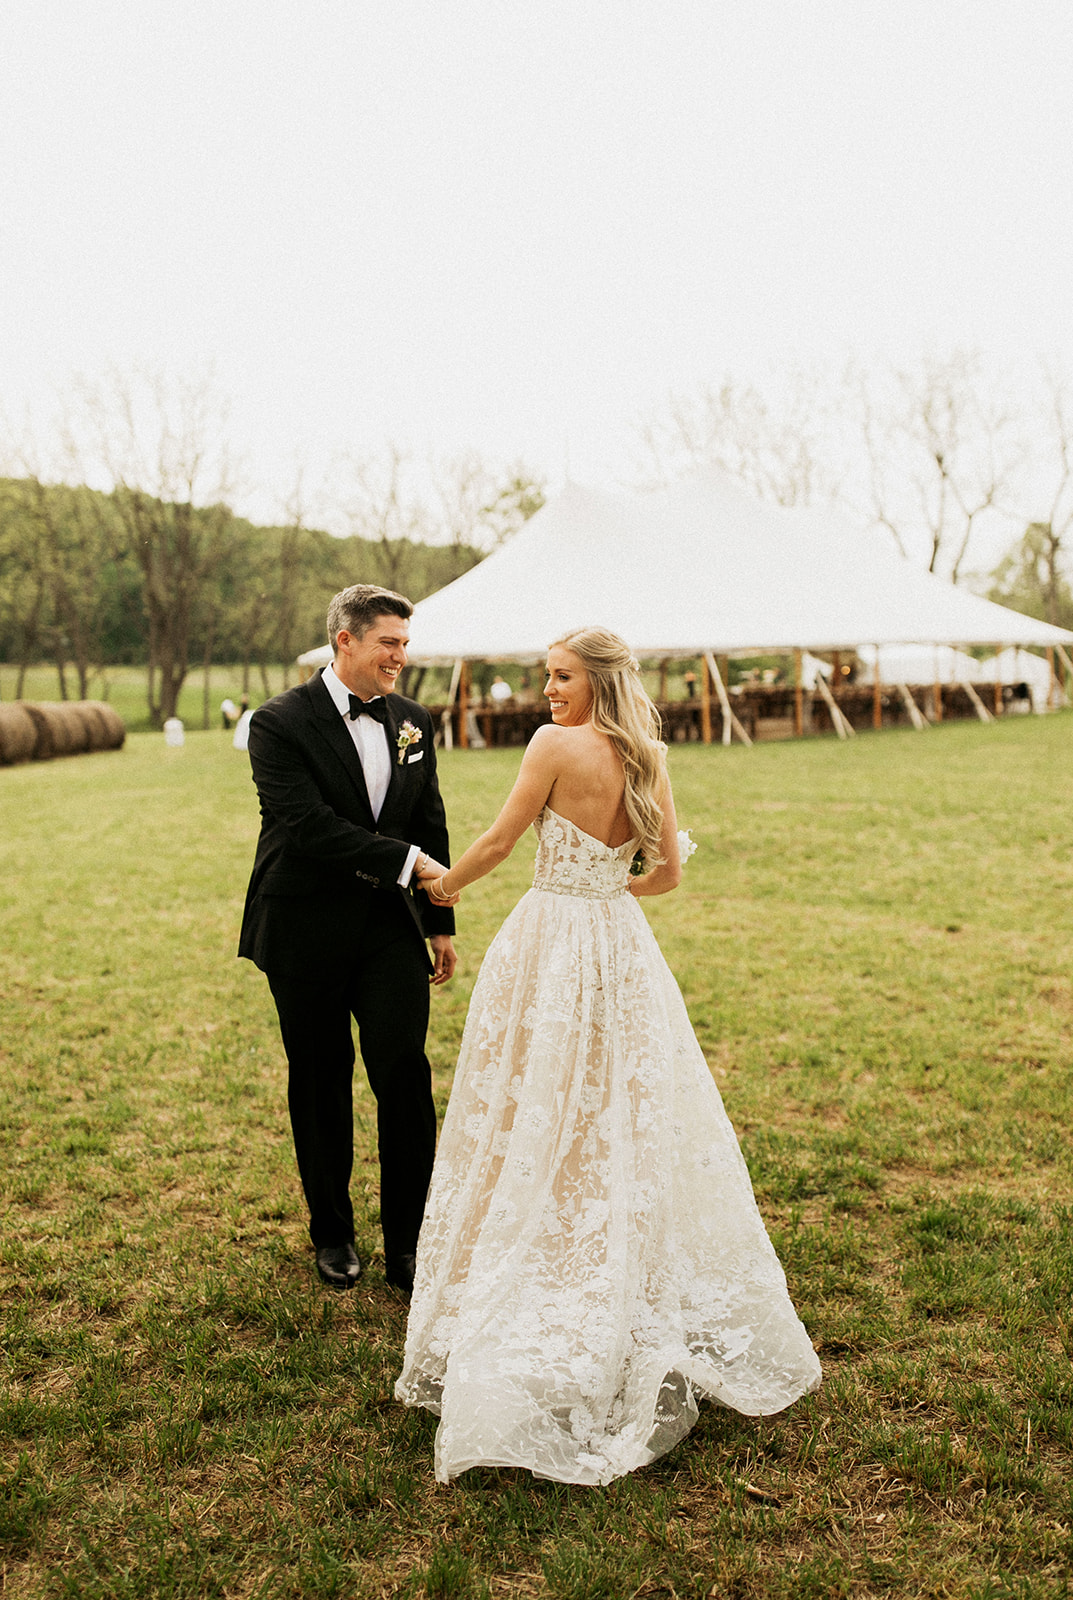 Tented Wedding at Home in Stockton, New Jersey | www.thestyledbride.com